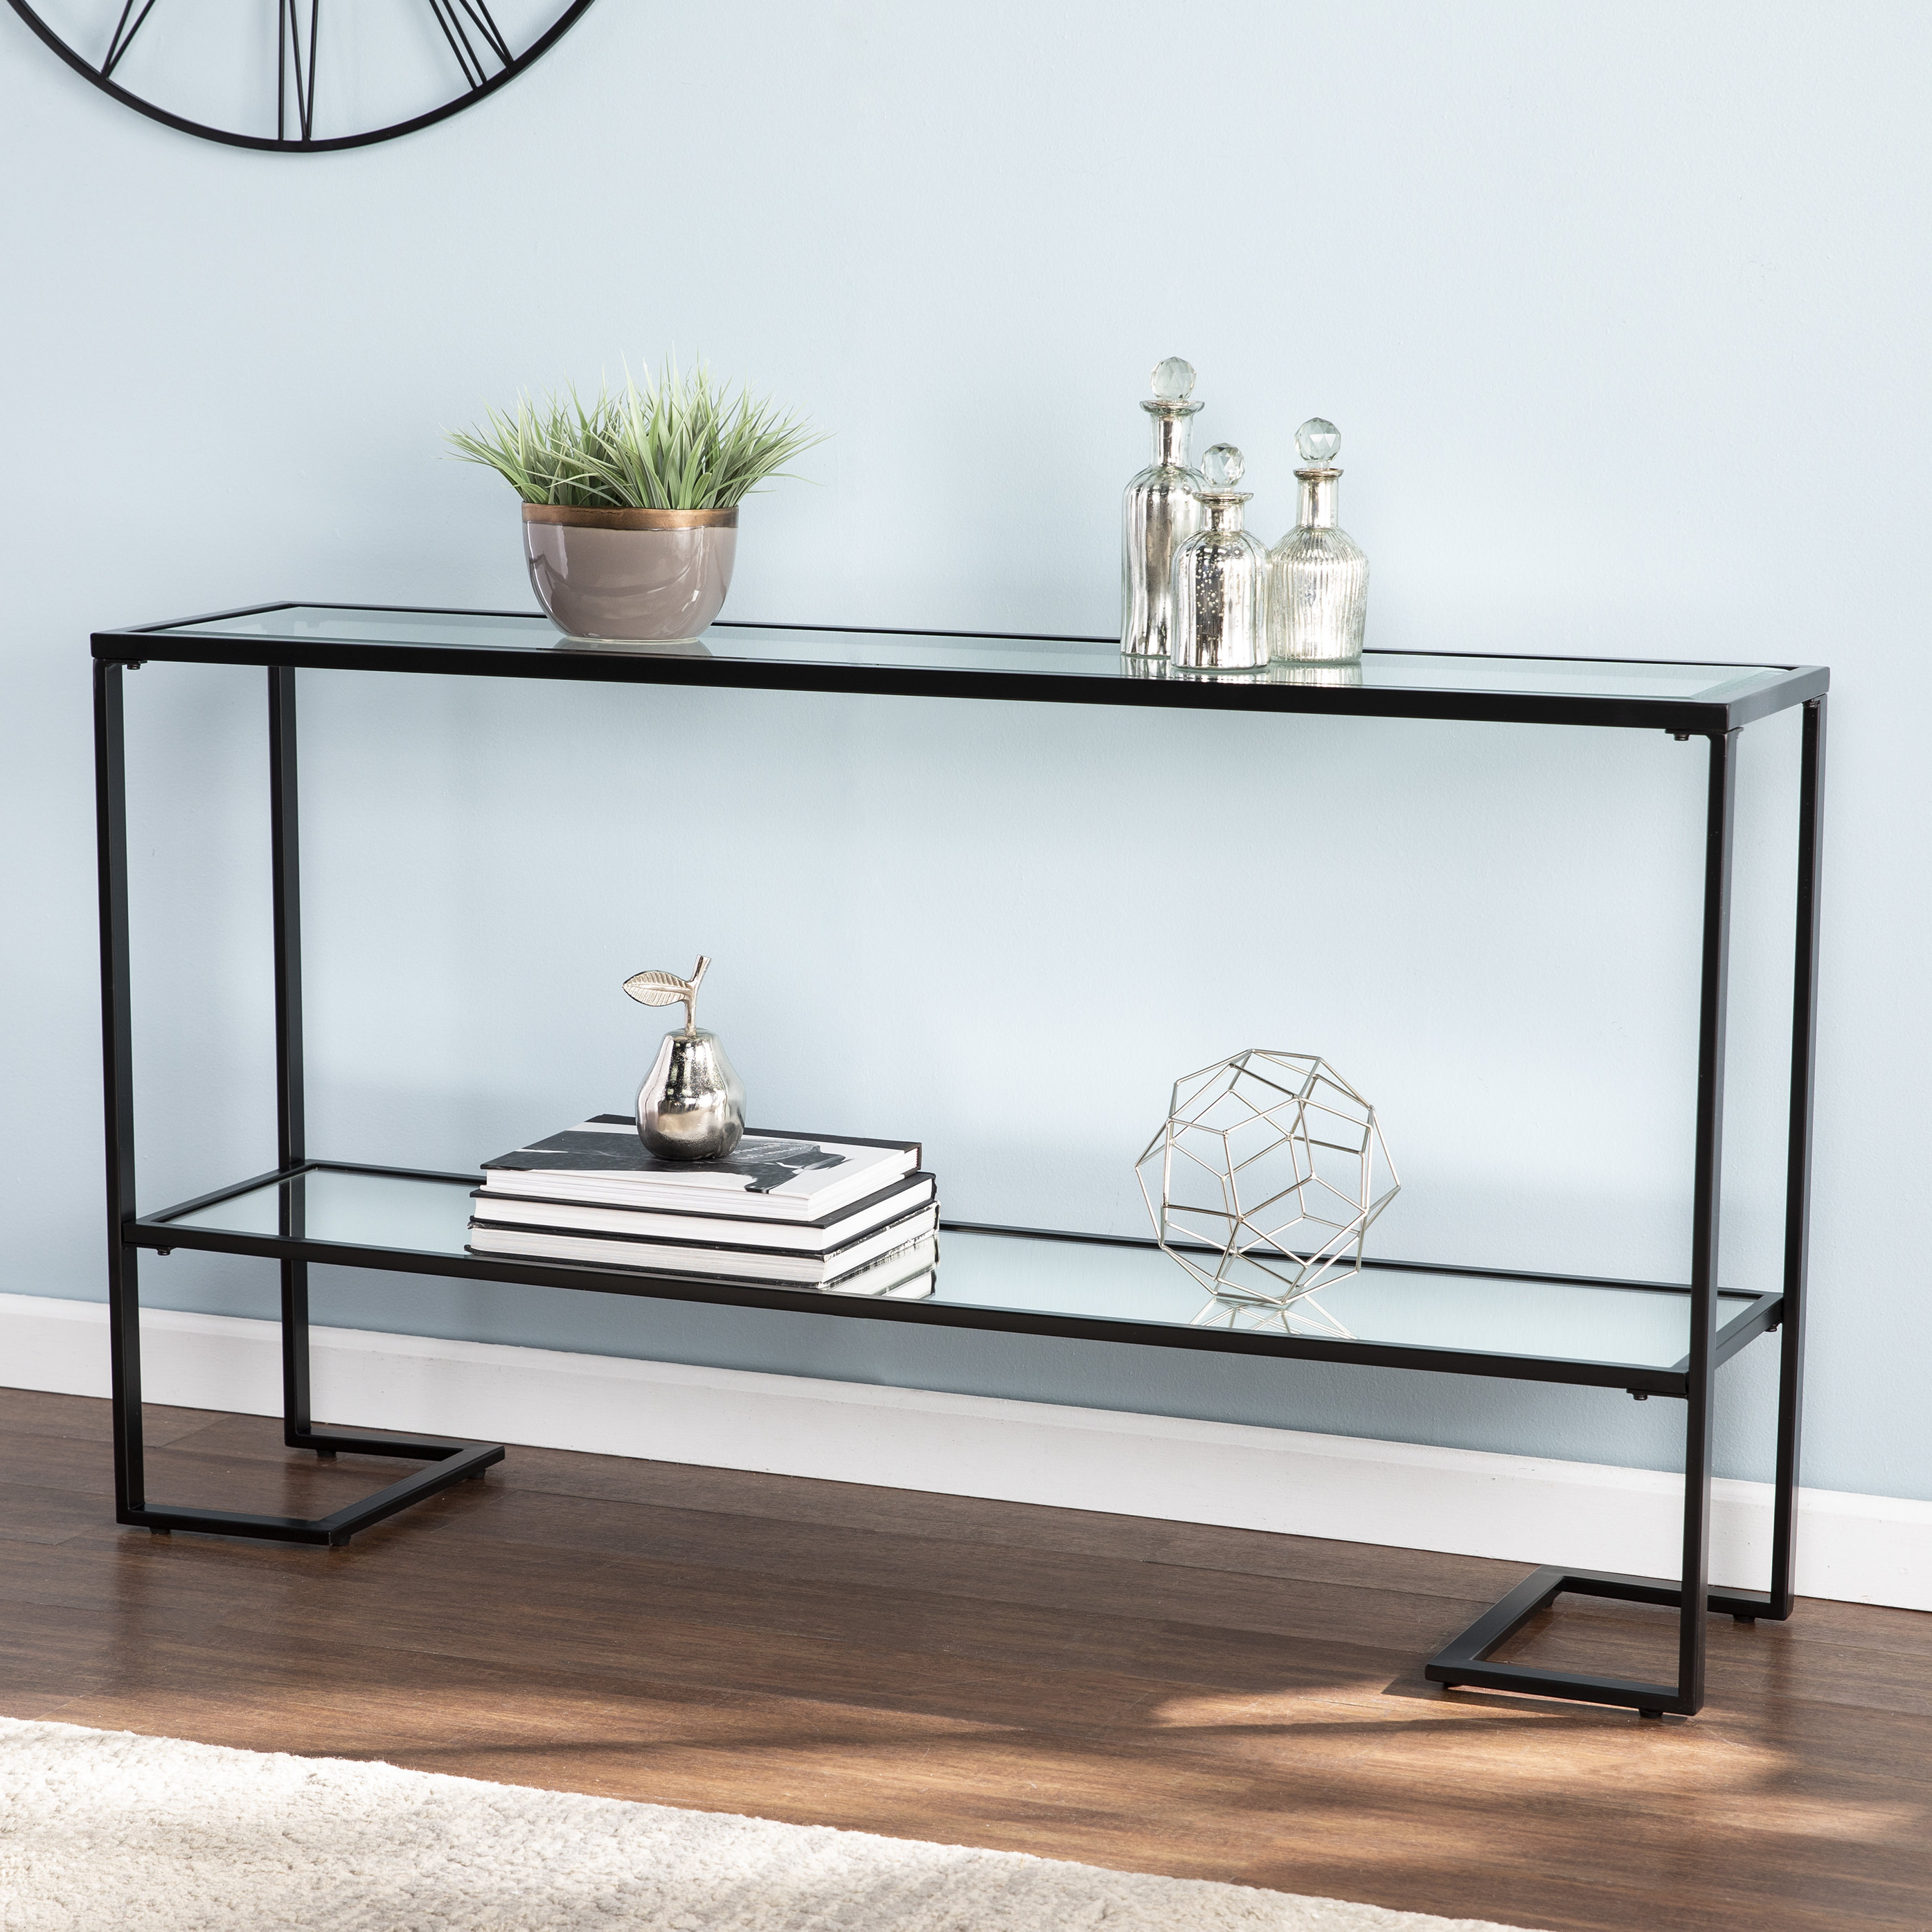 Mercer41 Jai Console Table & Reviews | Wayfair In Phillip Brass Console Tables (View 19 of 20)